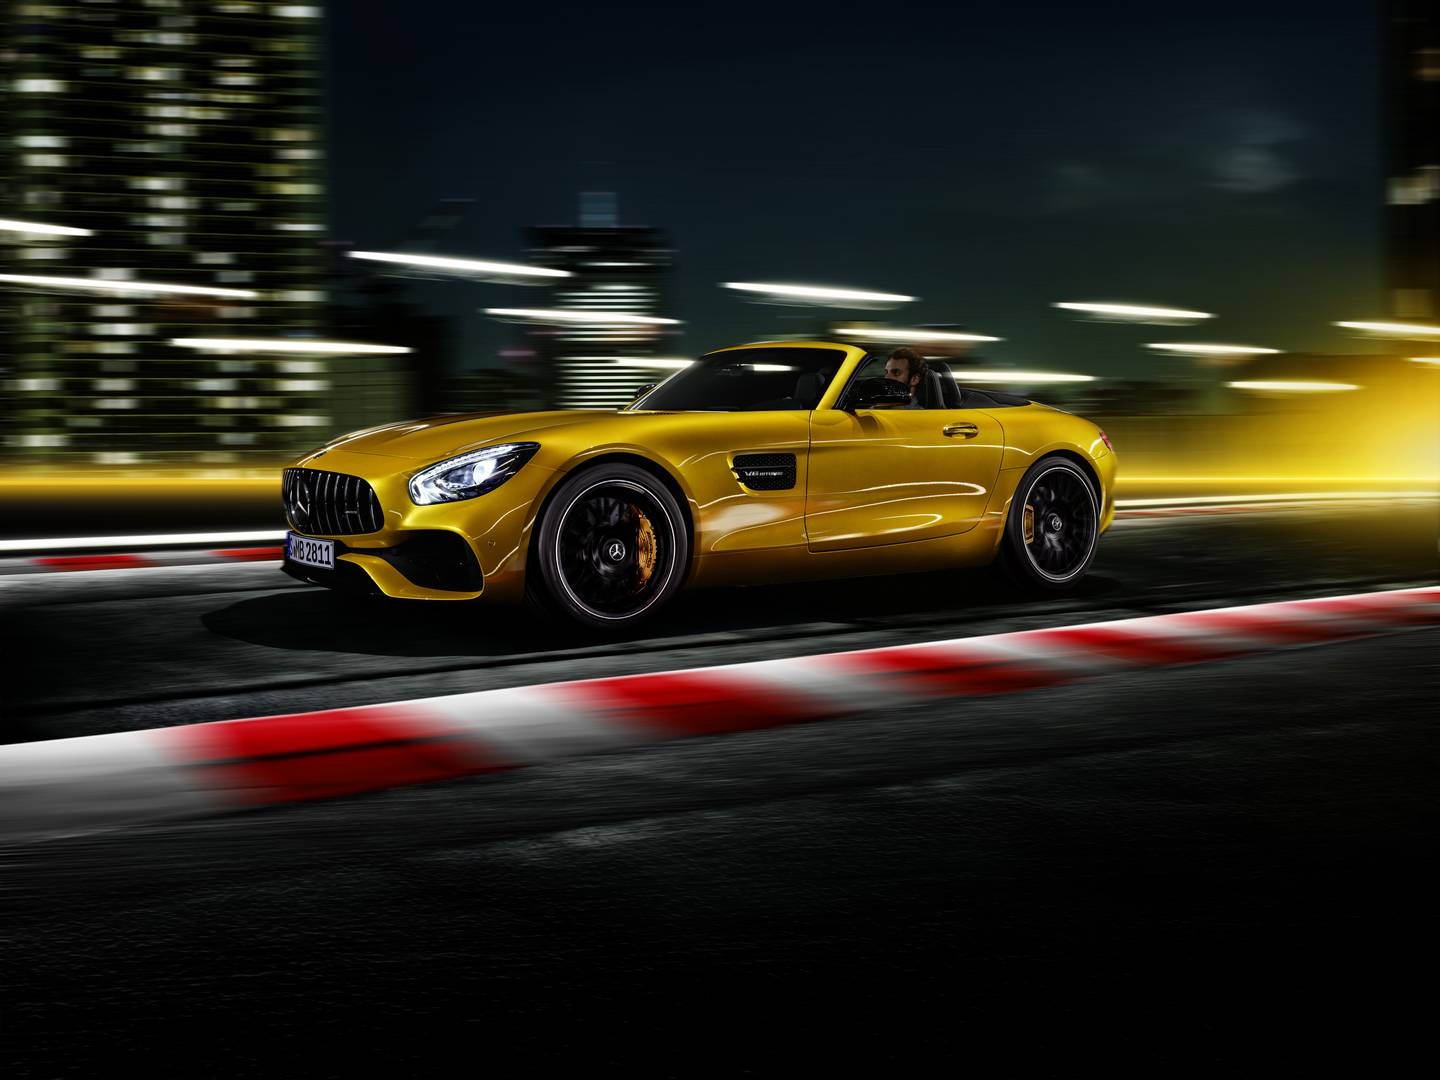 Mercedes-AMG GT S Roadster joins GT line-up